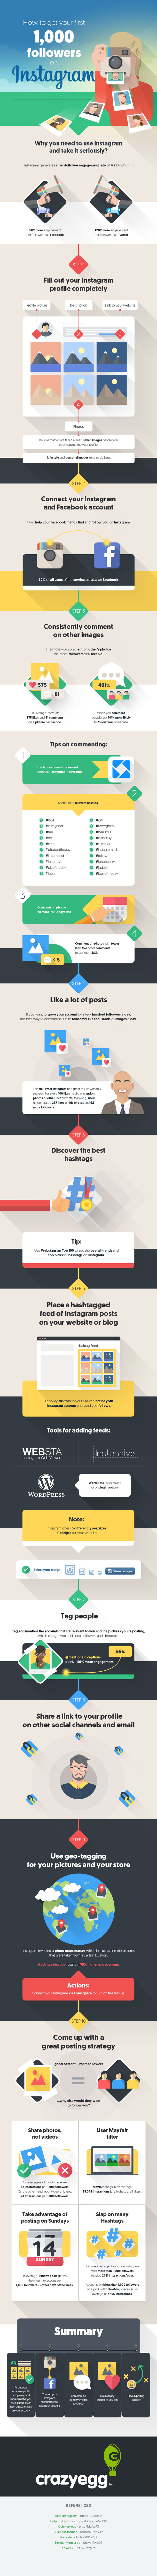 How To Get Your First 1000 Followers On Instagram [infographic]